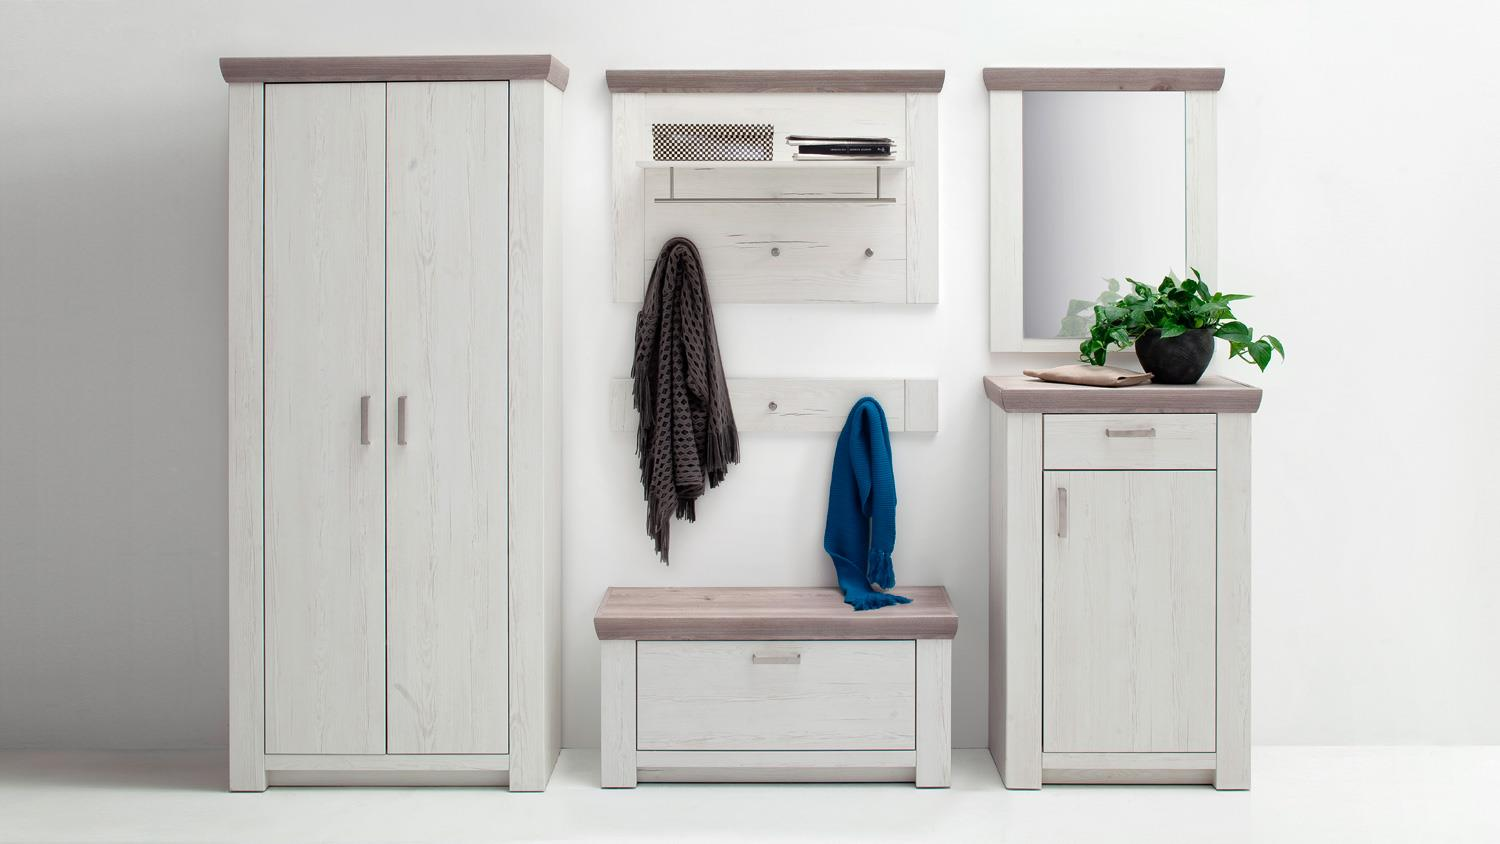 garderobe 1 bozen flurm bel komplett set pinie wei und eiche landhaus. Black Bedroom Furniture Sets. Home Design Ideas